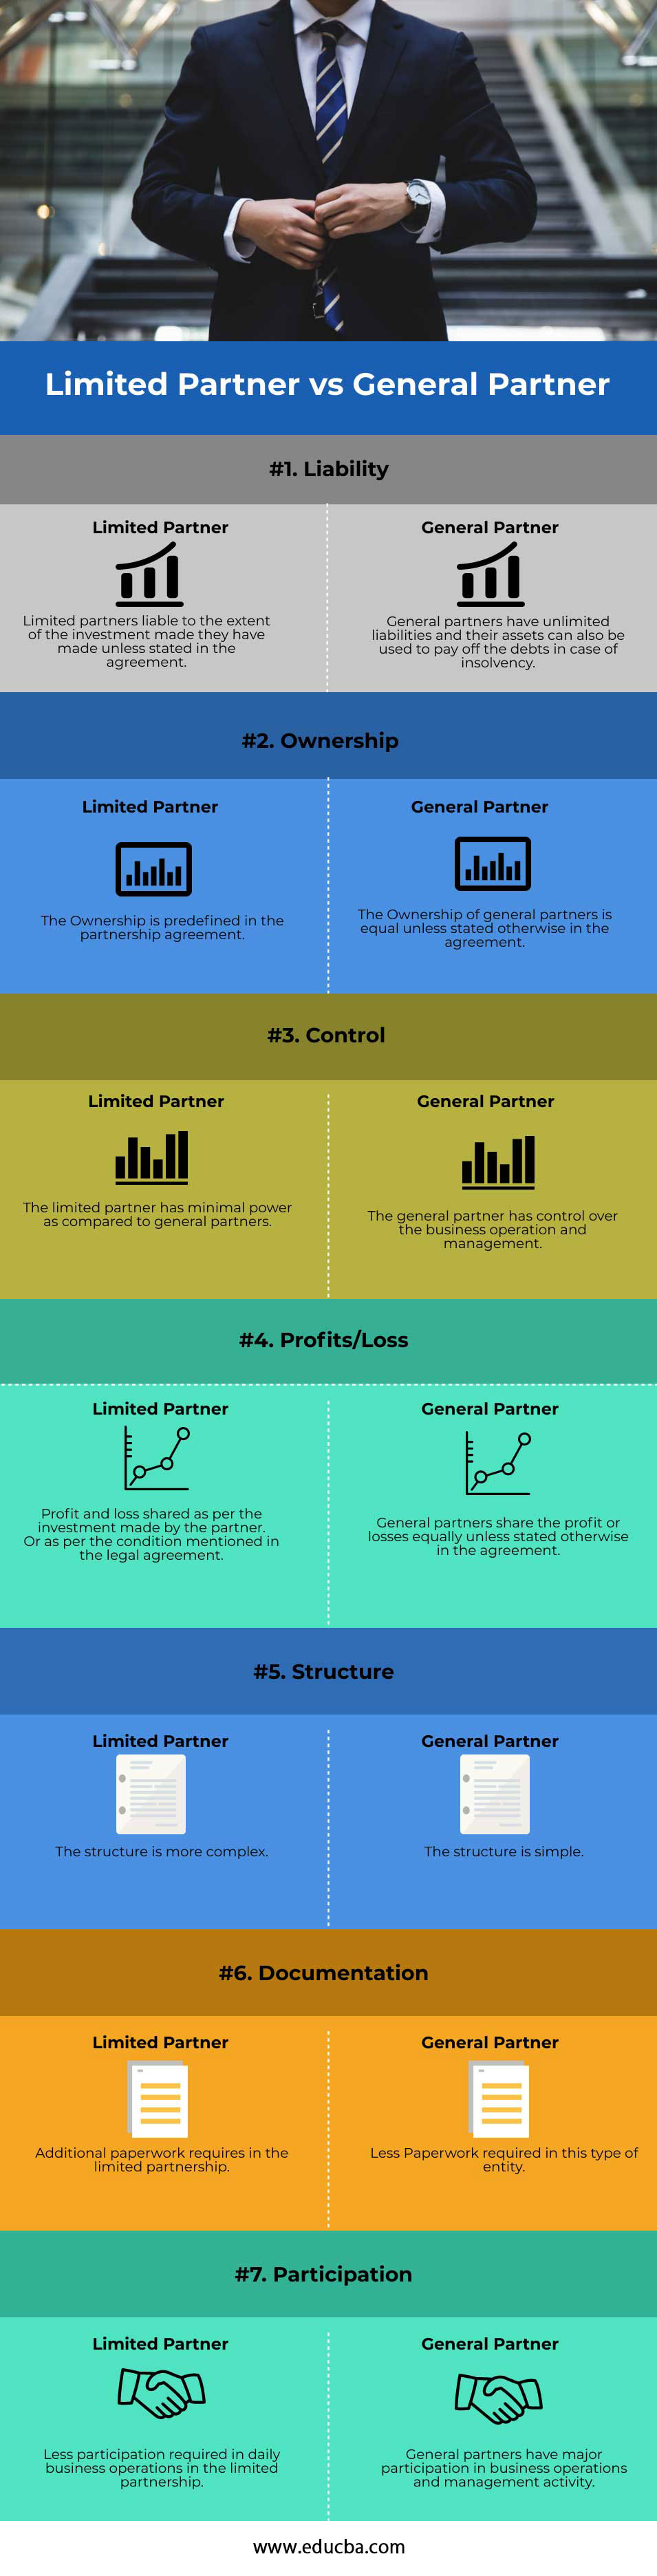 Limited-Partner-vs-General-Partner-info